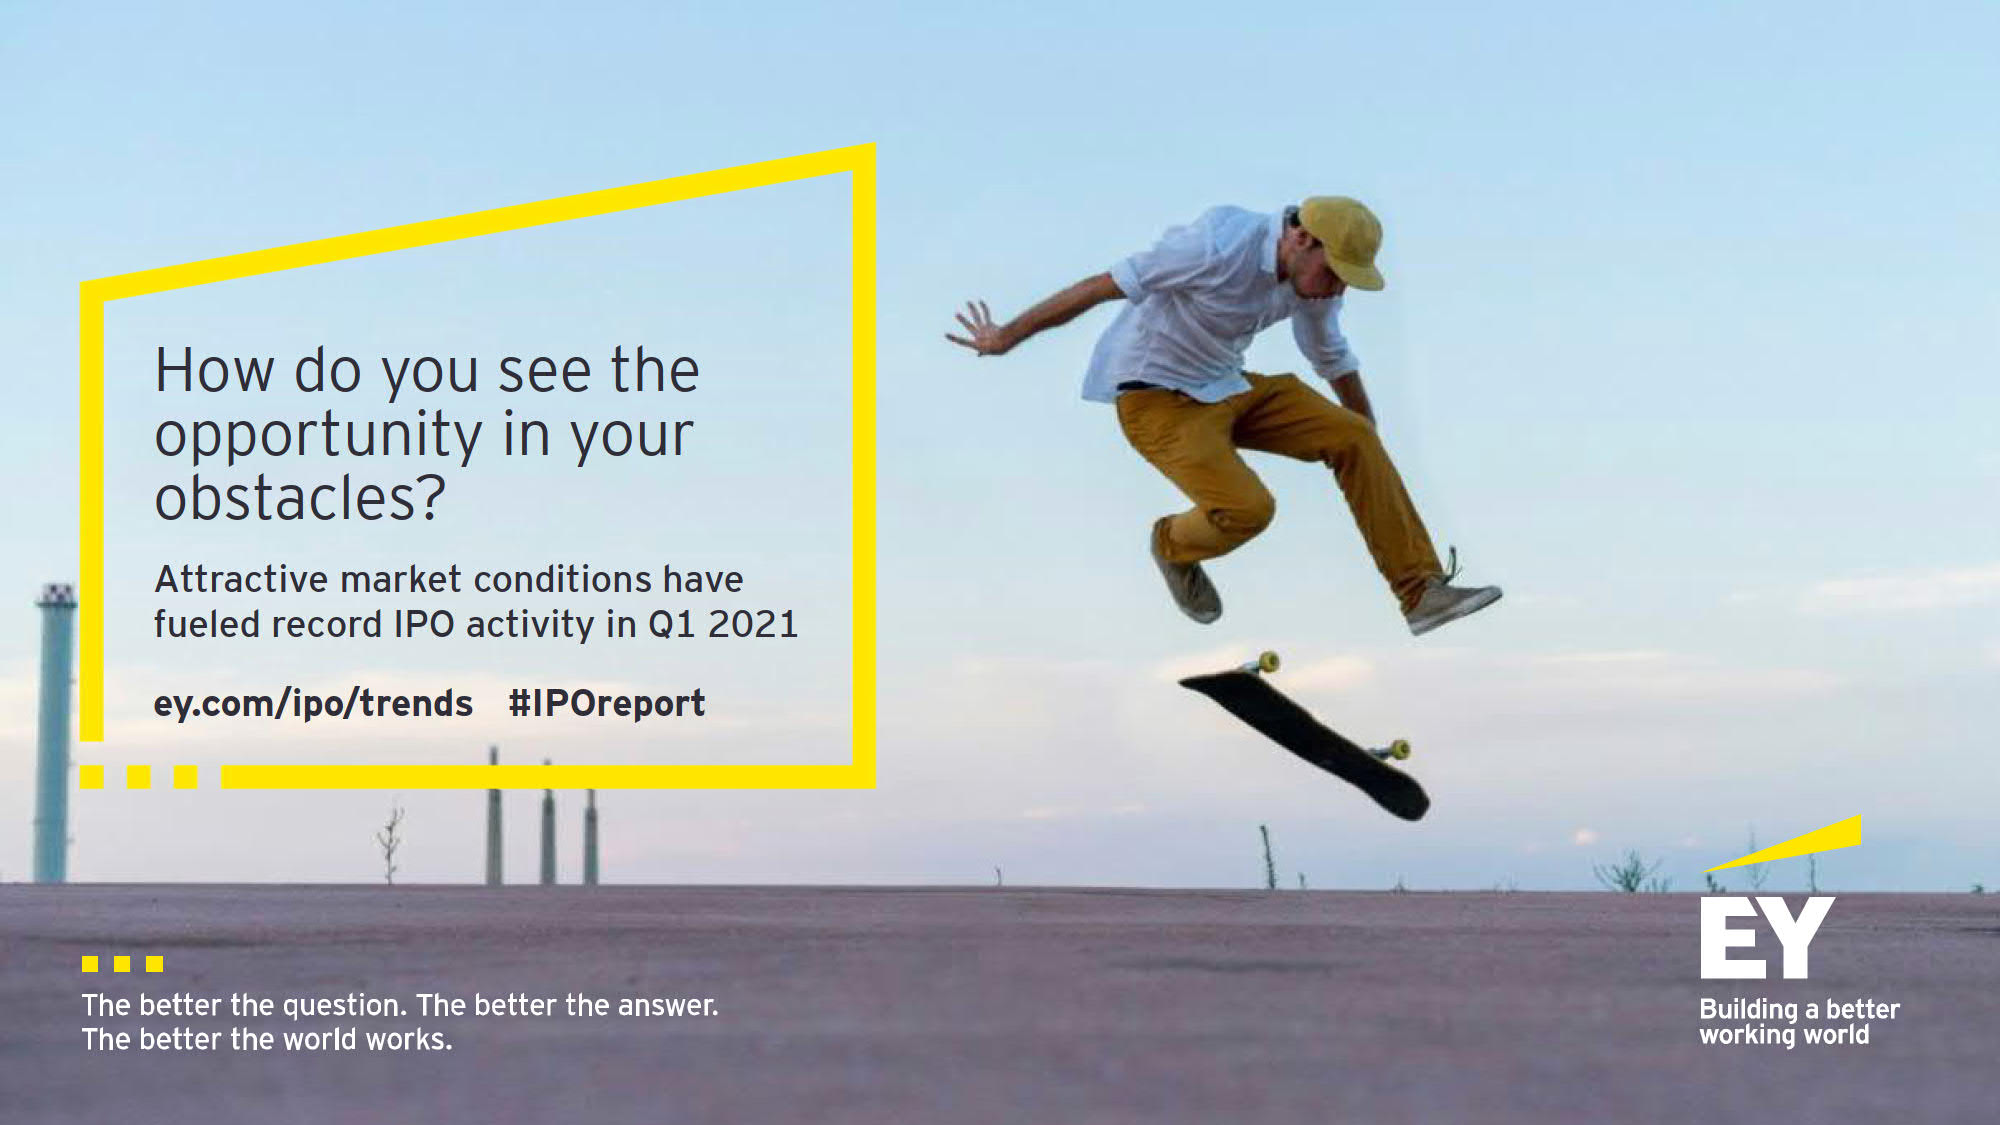 How do you see the opportunity in your obstacles? Attractive market conditions have fueled record IPO activity in Q1 2021